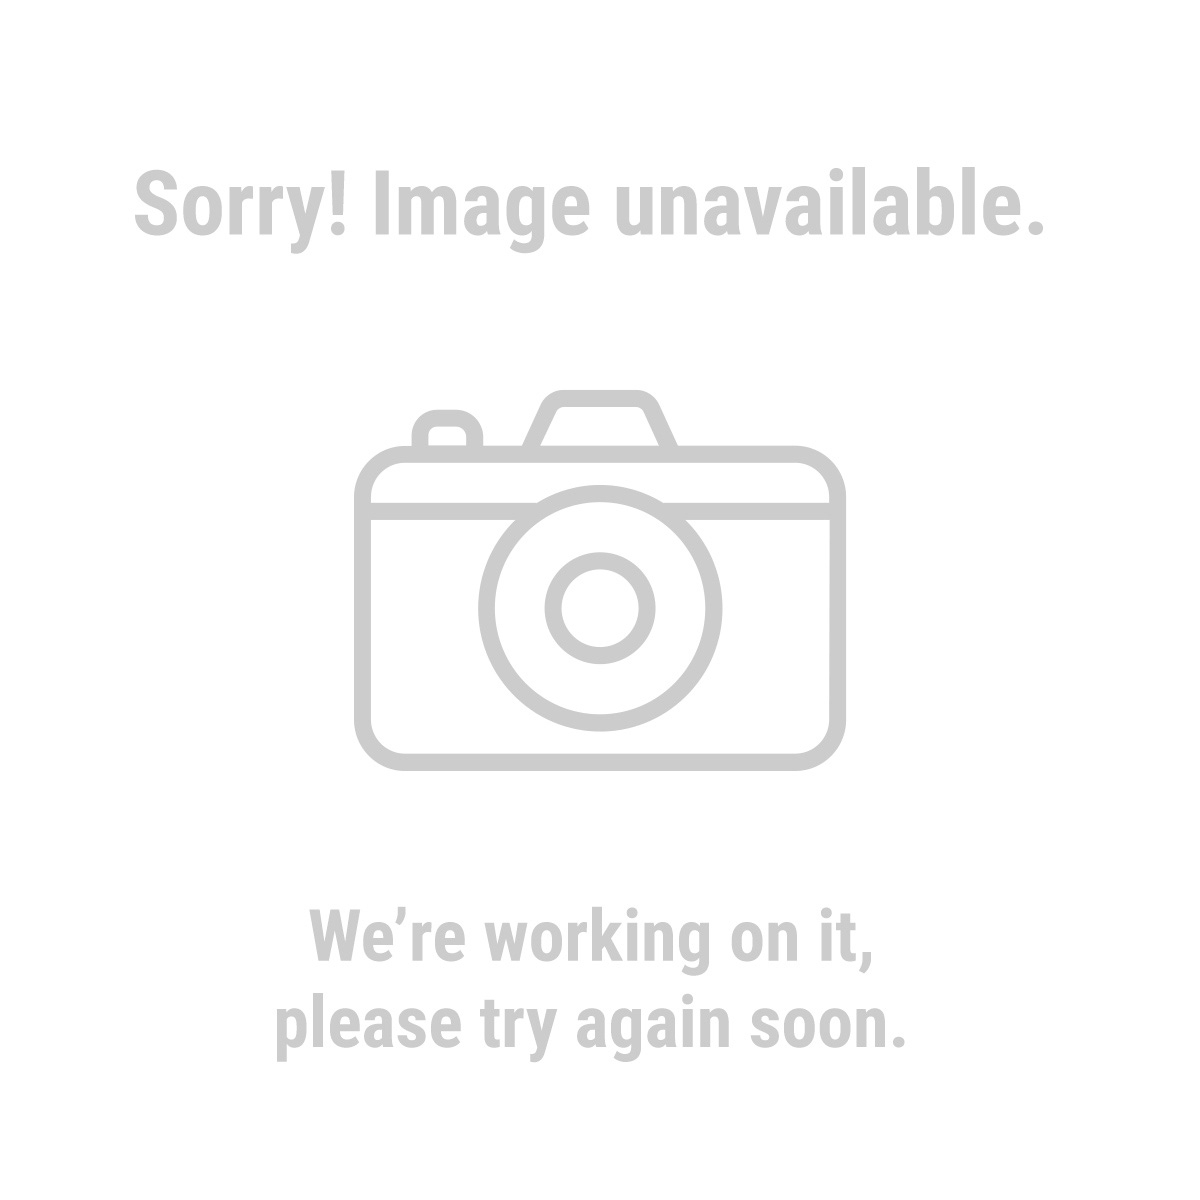 Warrior® 61544 1/4 in. Titanium Nitride Coated High Speed Steel Drill Bits,  Piece